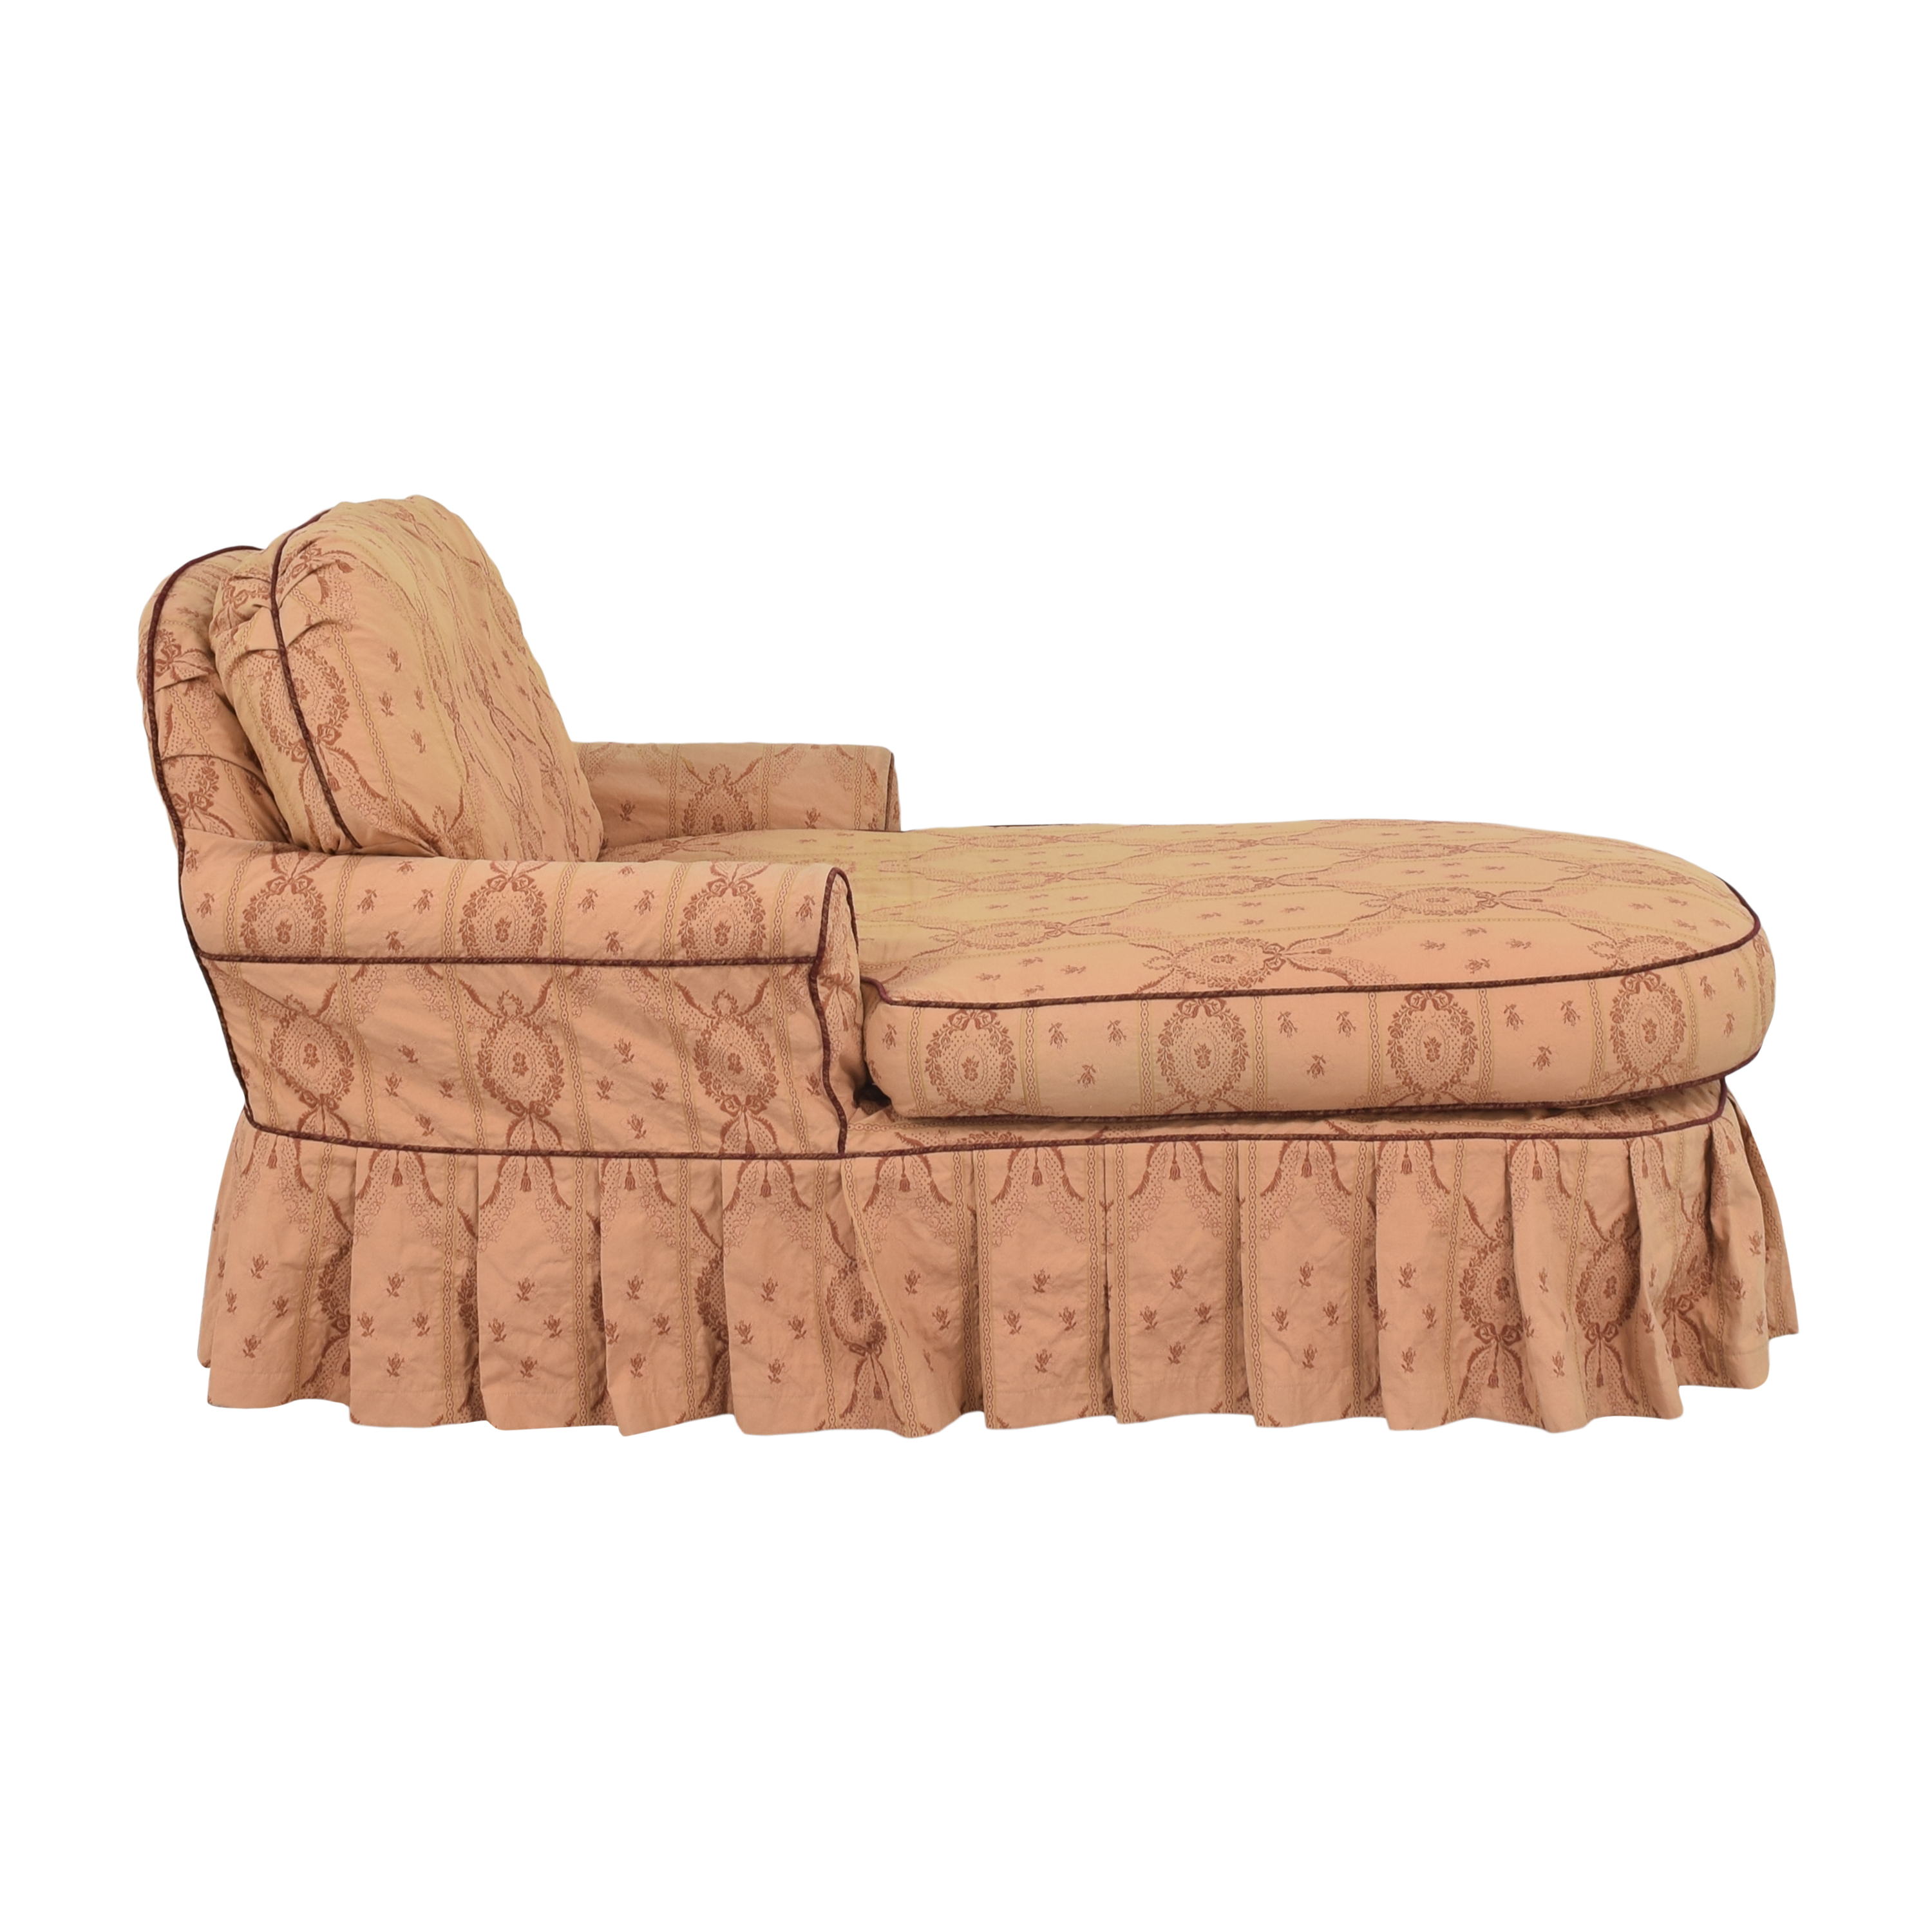 JM Paquet JM Paquet Skirted Chaise pink and red